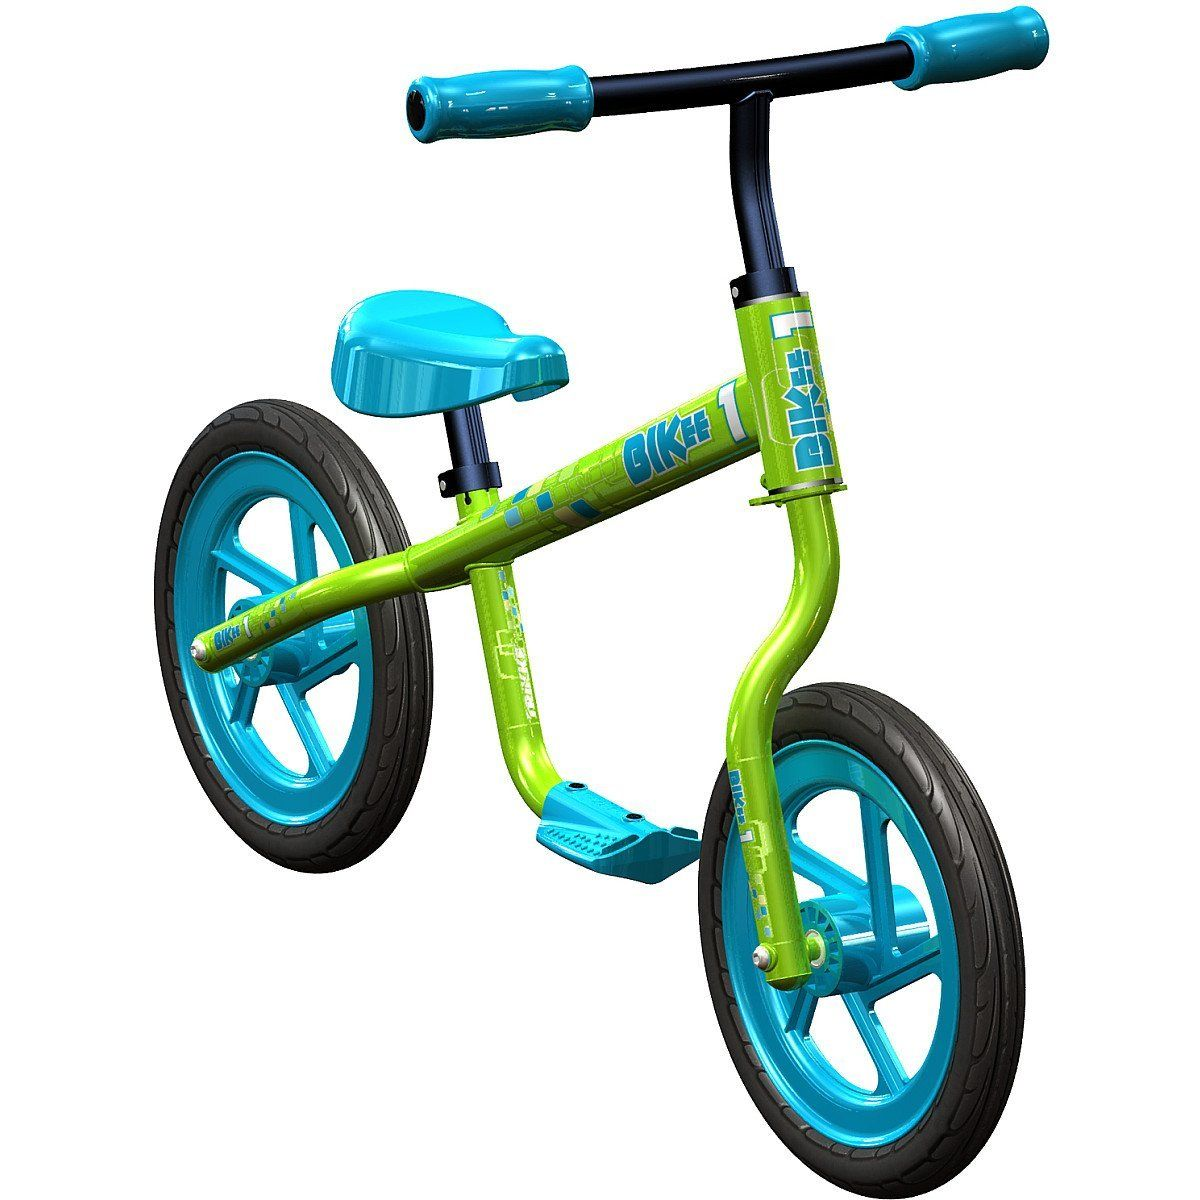 Balance Bikes Comparison Charts And Ratings Balance Bike